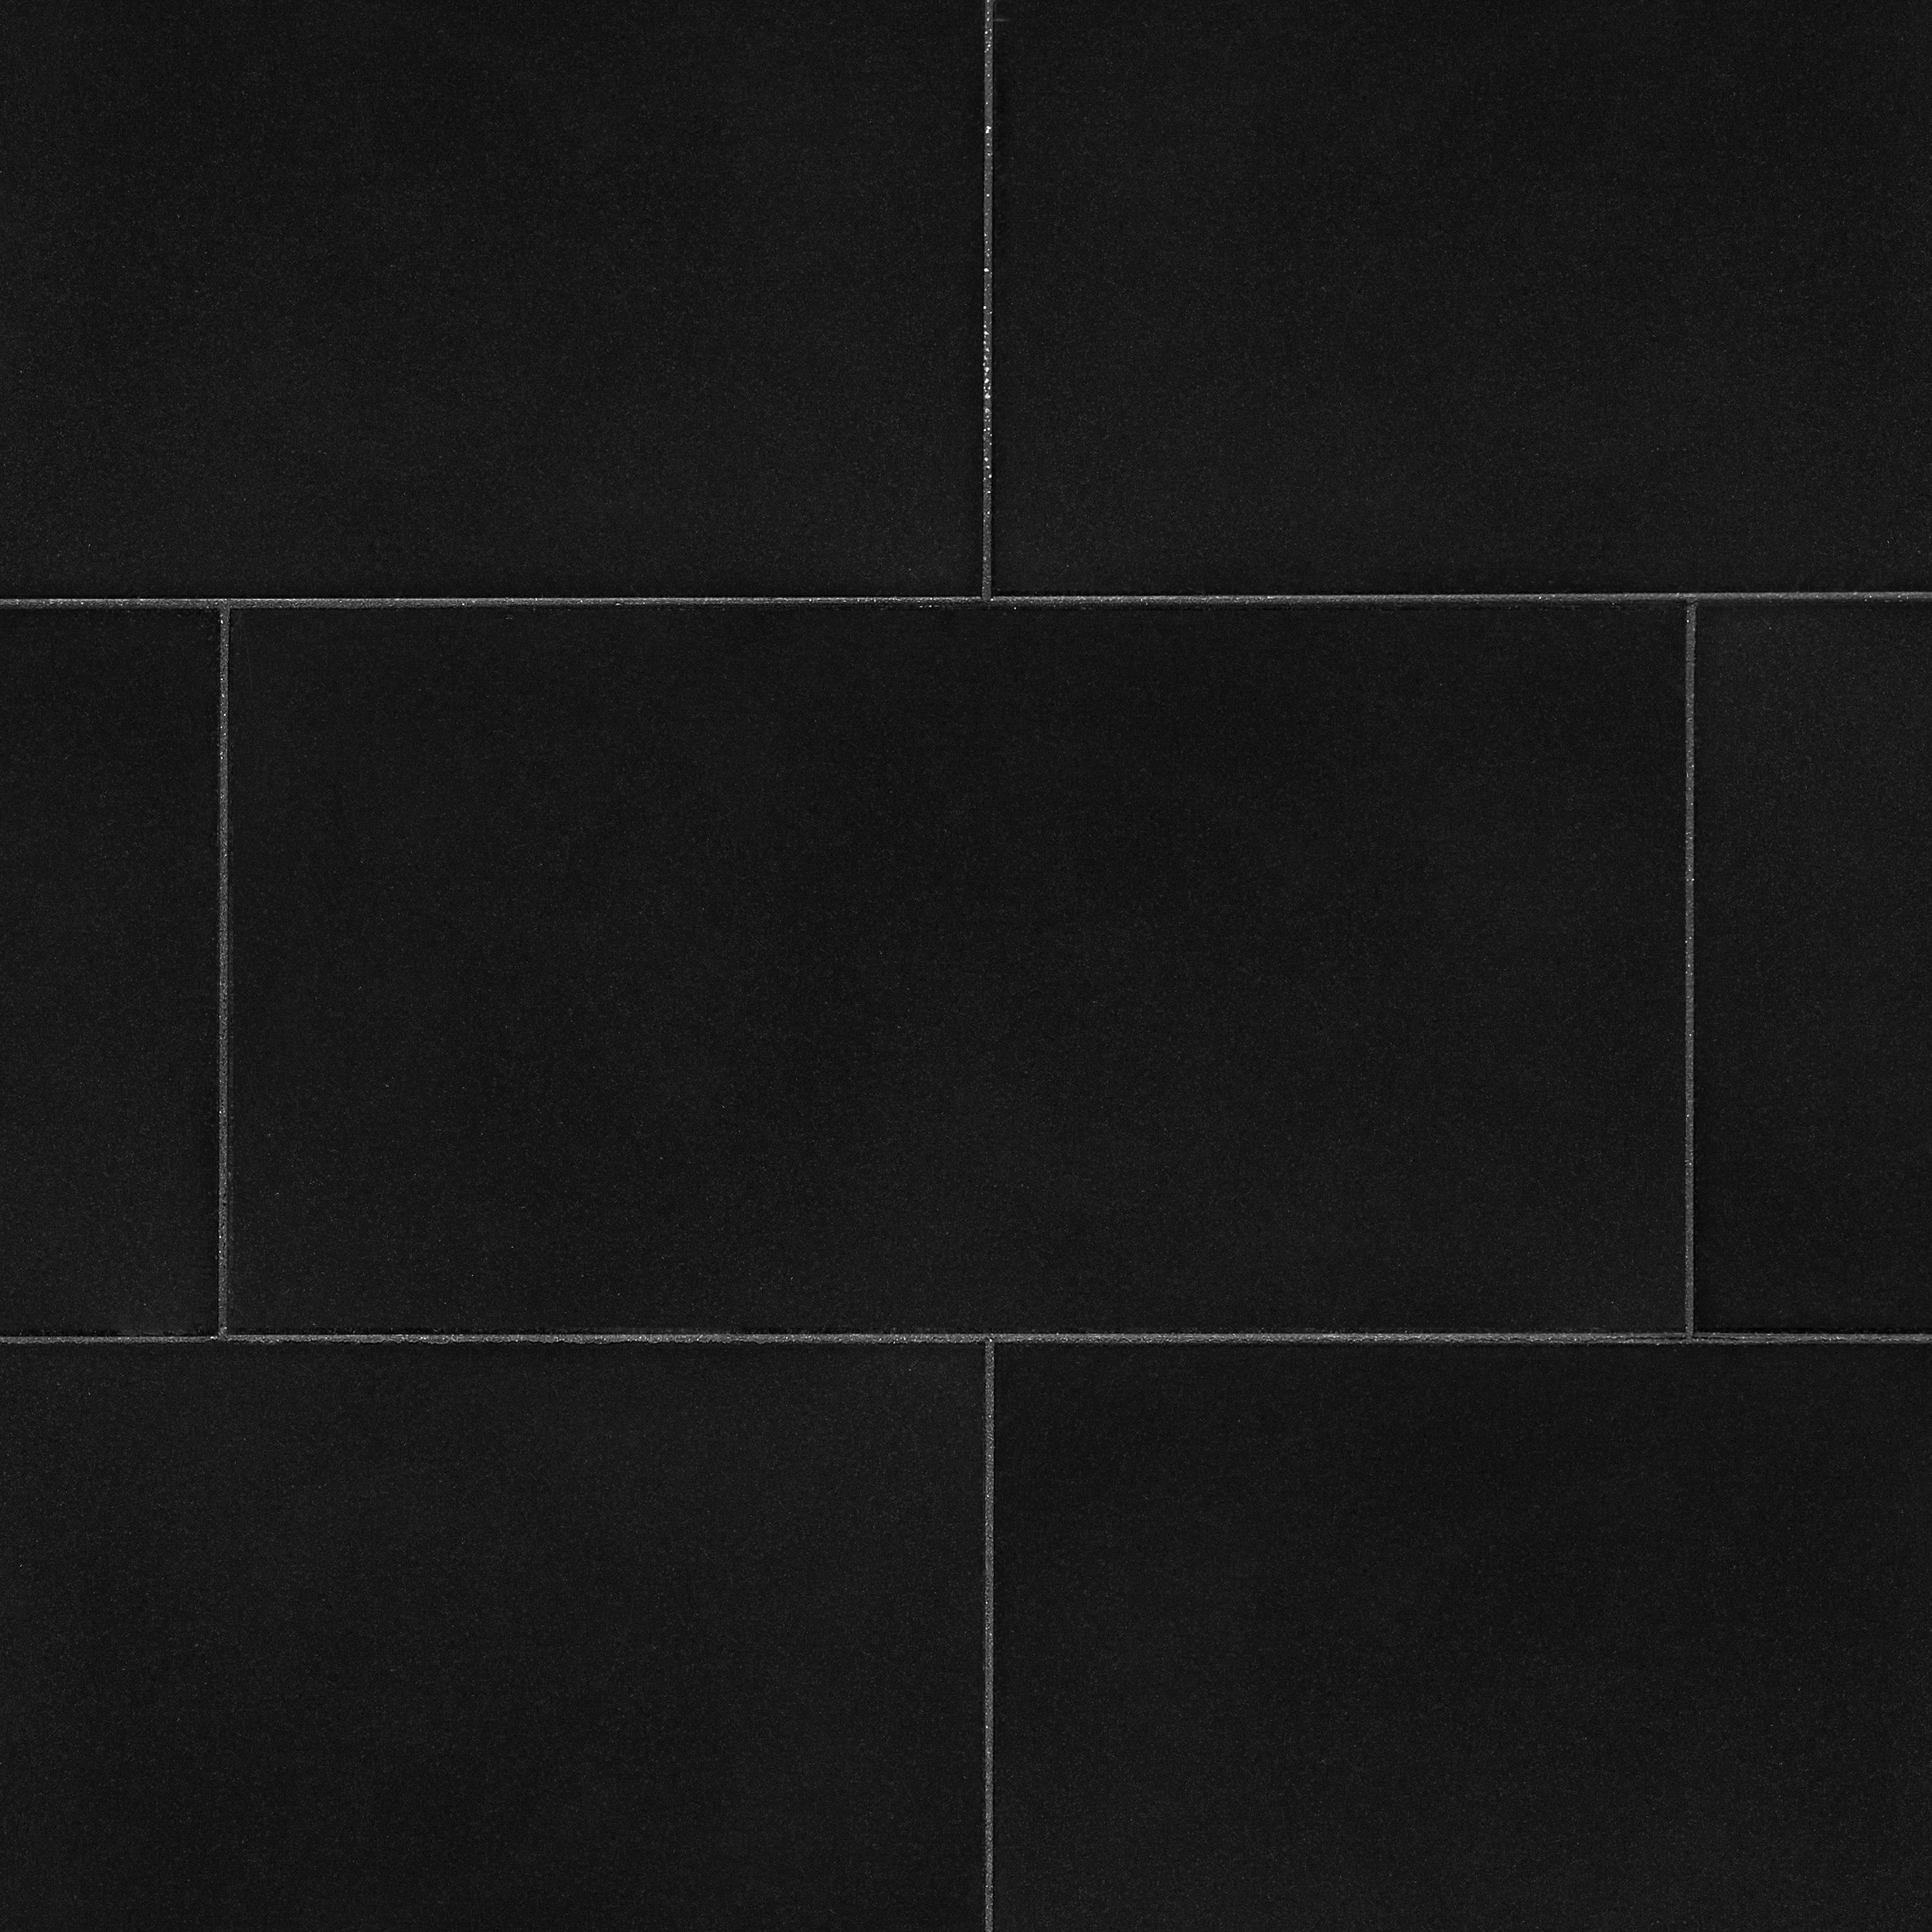 Absolute Black Honed Granite Tile Floor Decor Honed Granite Granite Tile Black Granite Tile